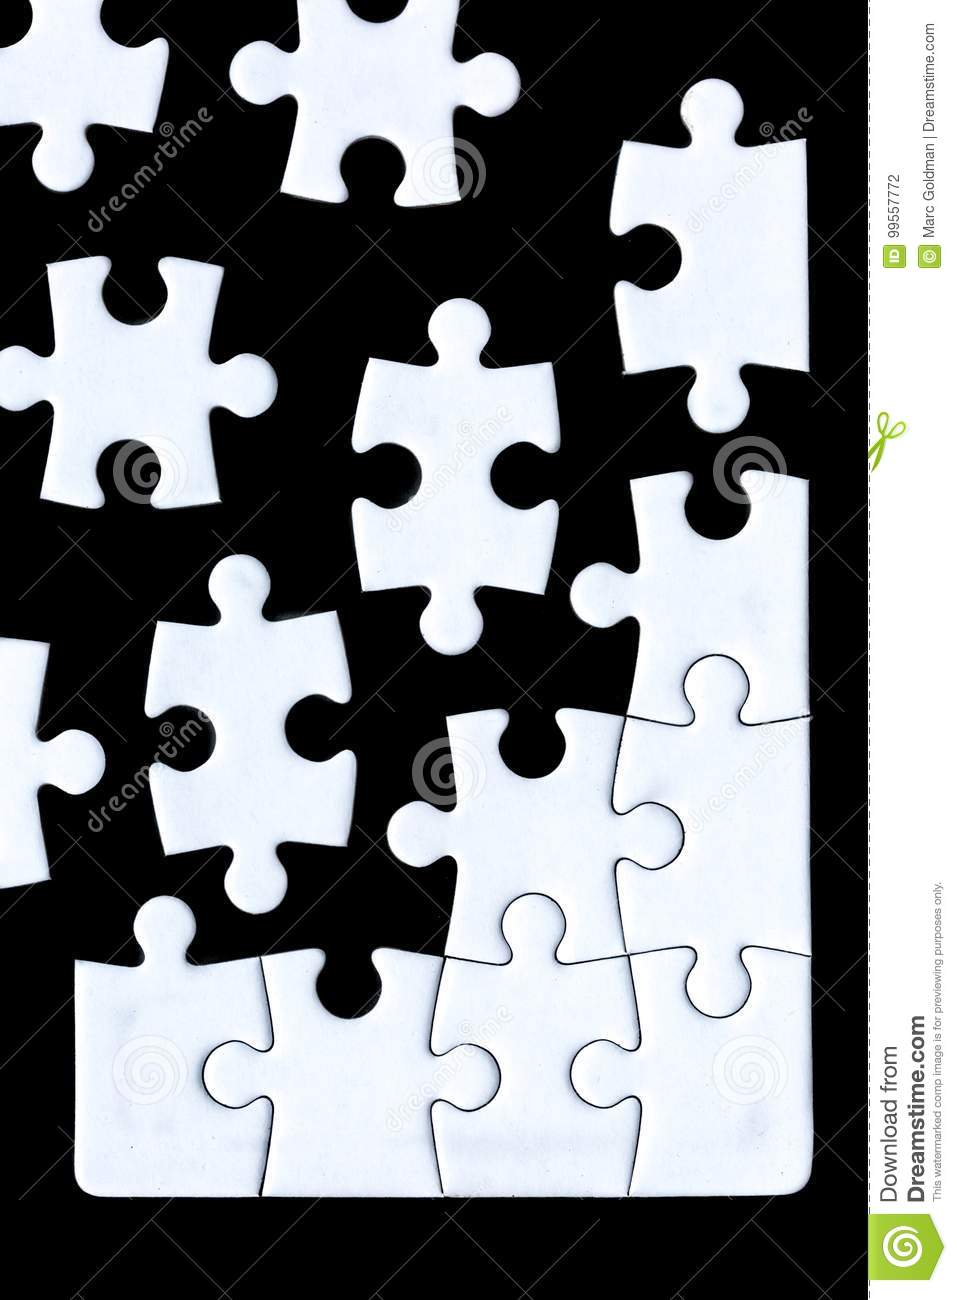 Puzzle pieces coming together